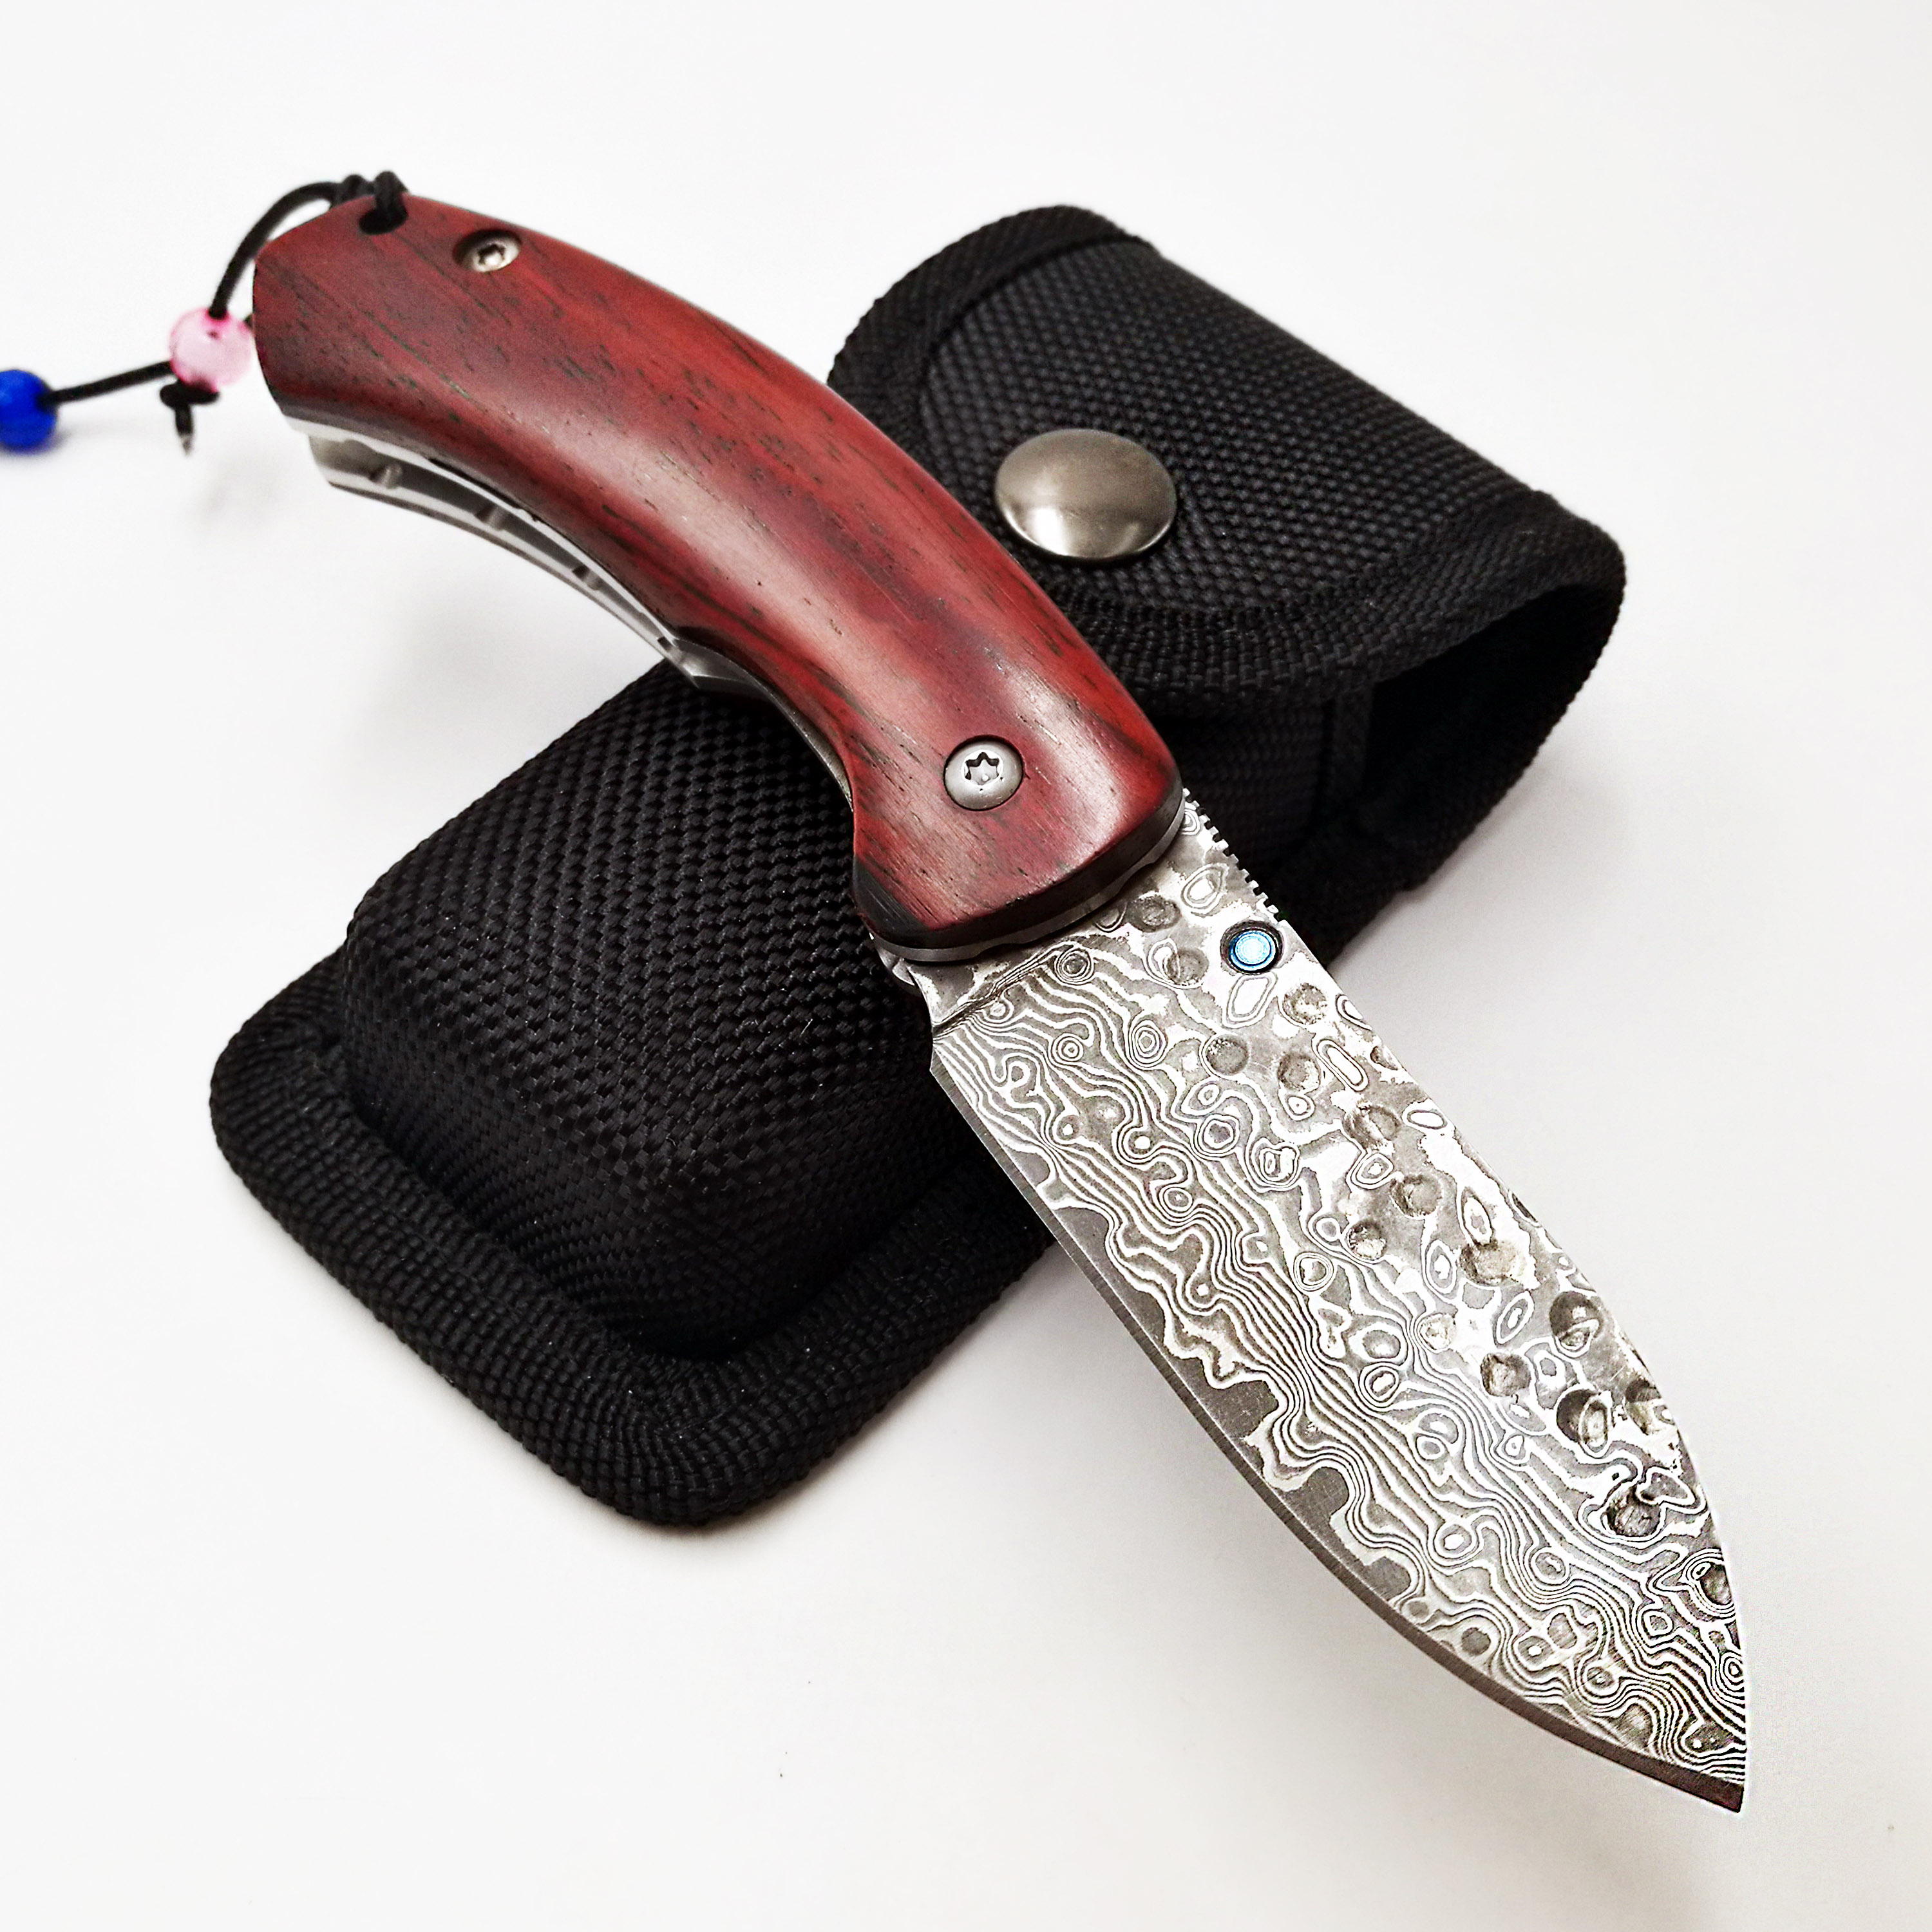 Tactical Pocket Folding Knife Damascus Blade Rosewood Handle Outdoor Camping Survival Diving Knive Hunting High Quality EDC Tool in Knives from Tools